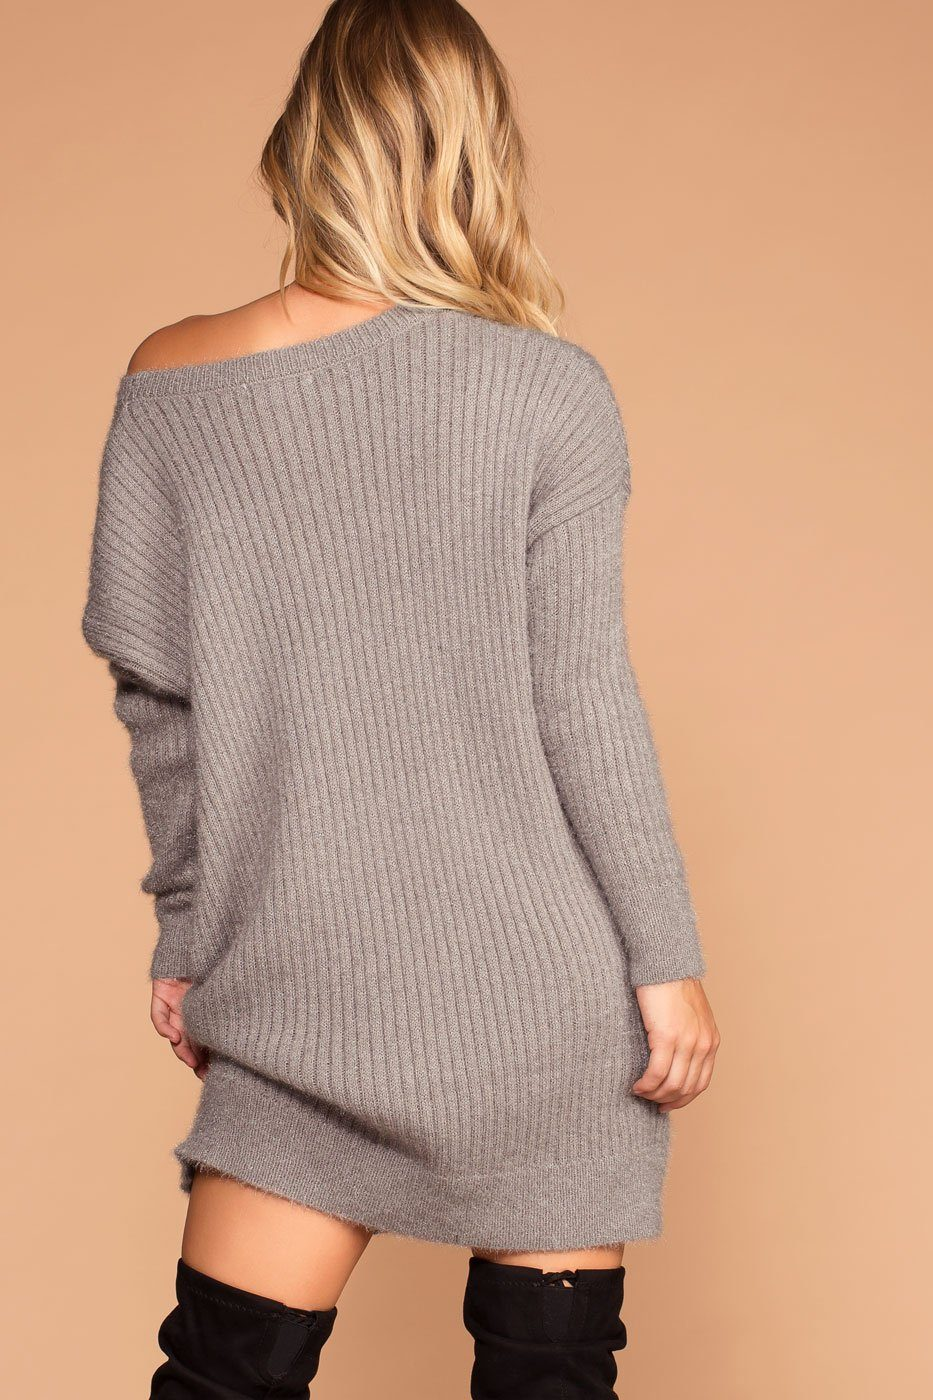 Cold Outside Grey Knit Sweater Dress